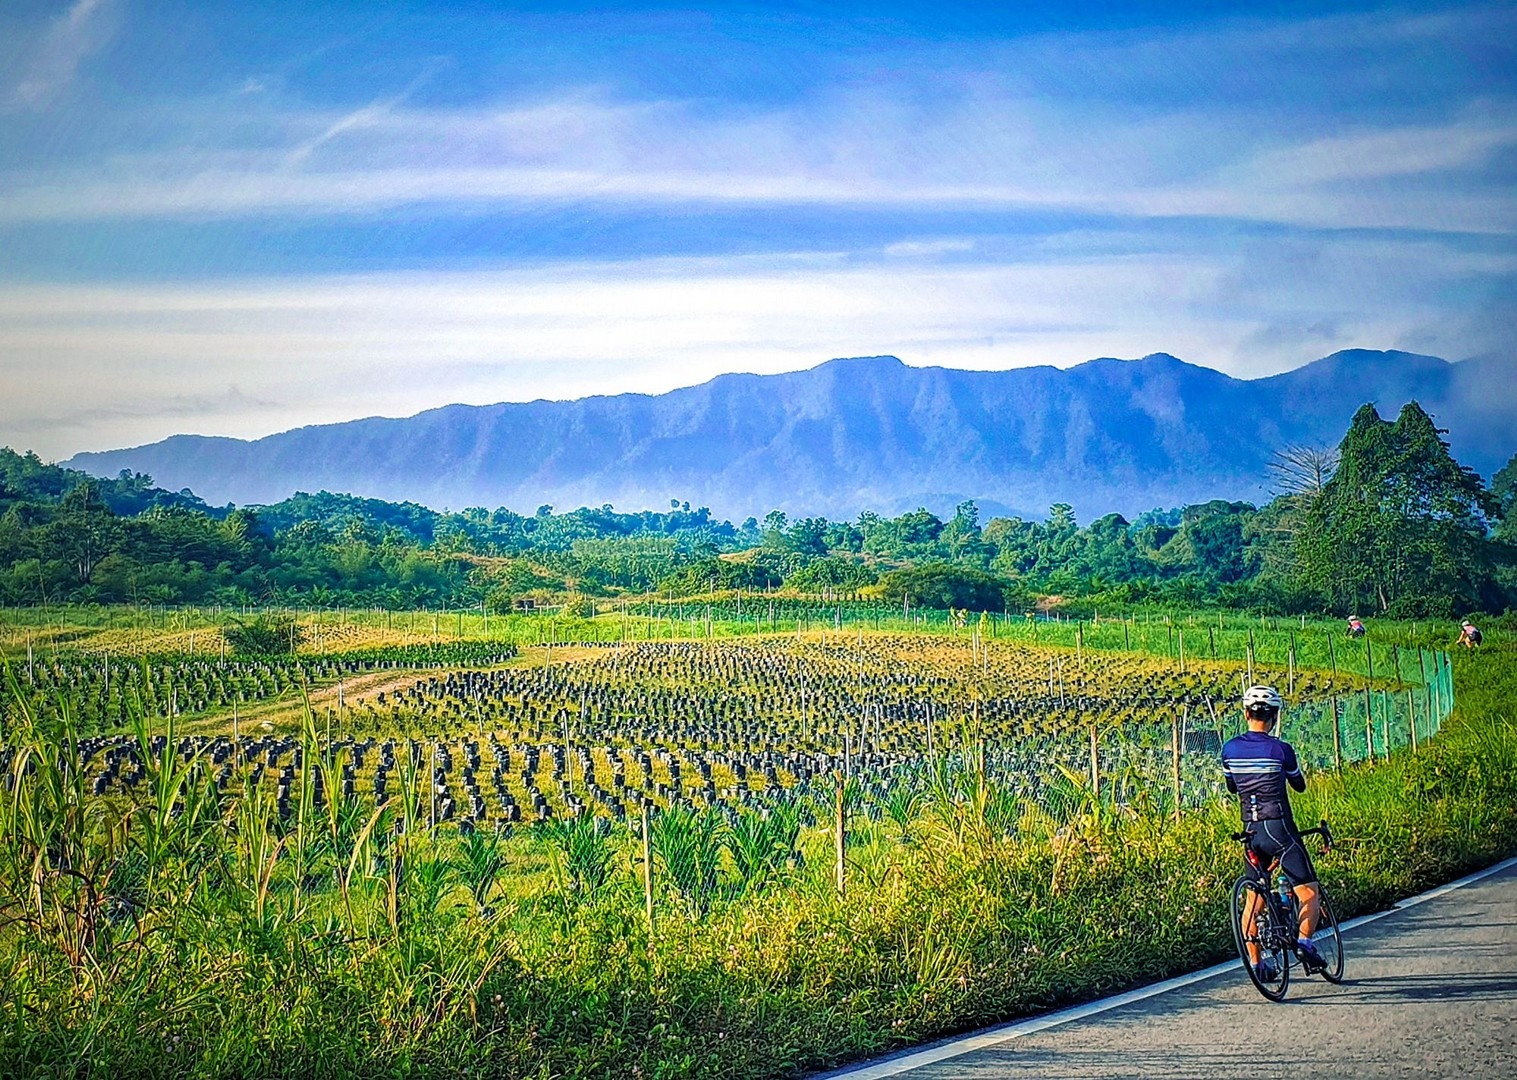 road-borneo-holiday-cycling-saddle-skedaddle-with-guides.jpg - Borneo - Sarawak to Sabah - Guided Road Cycling Holiday - Road Cycling